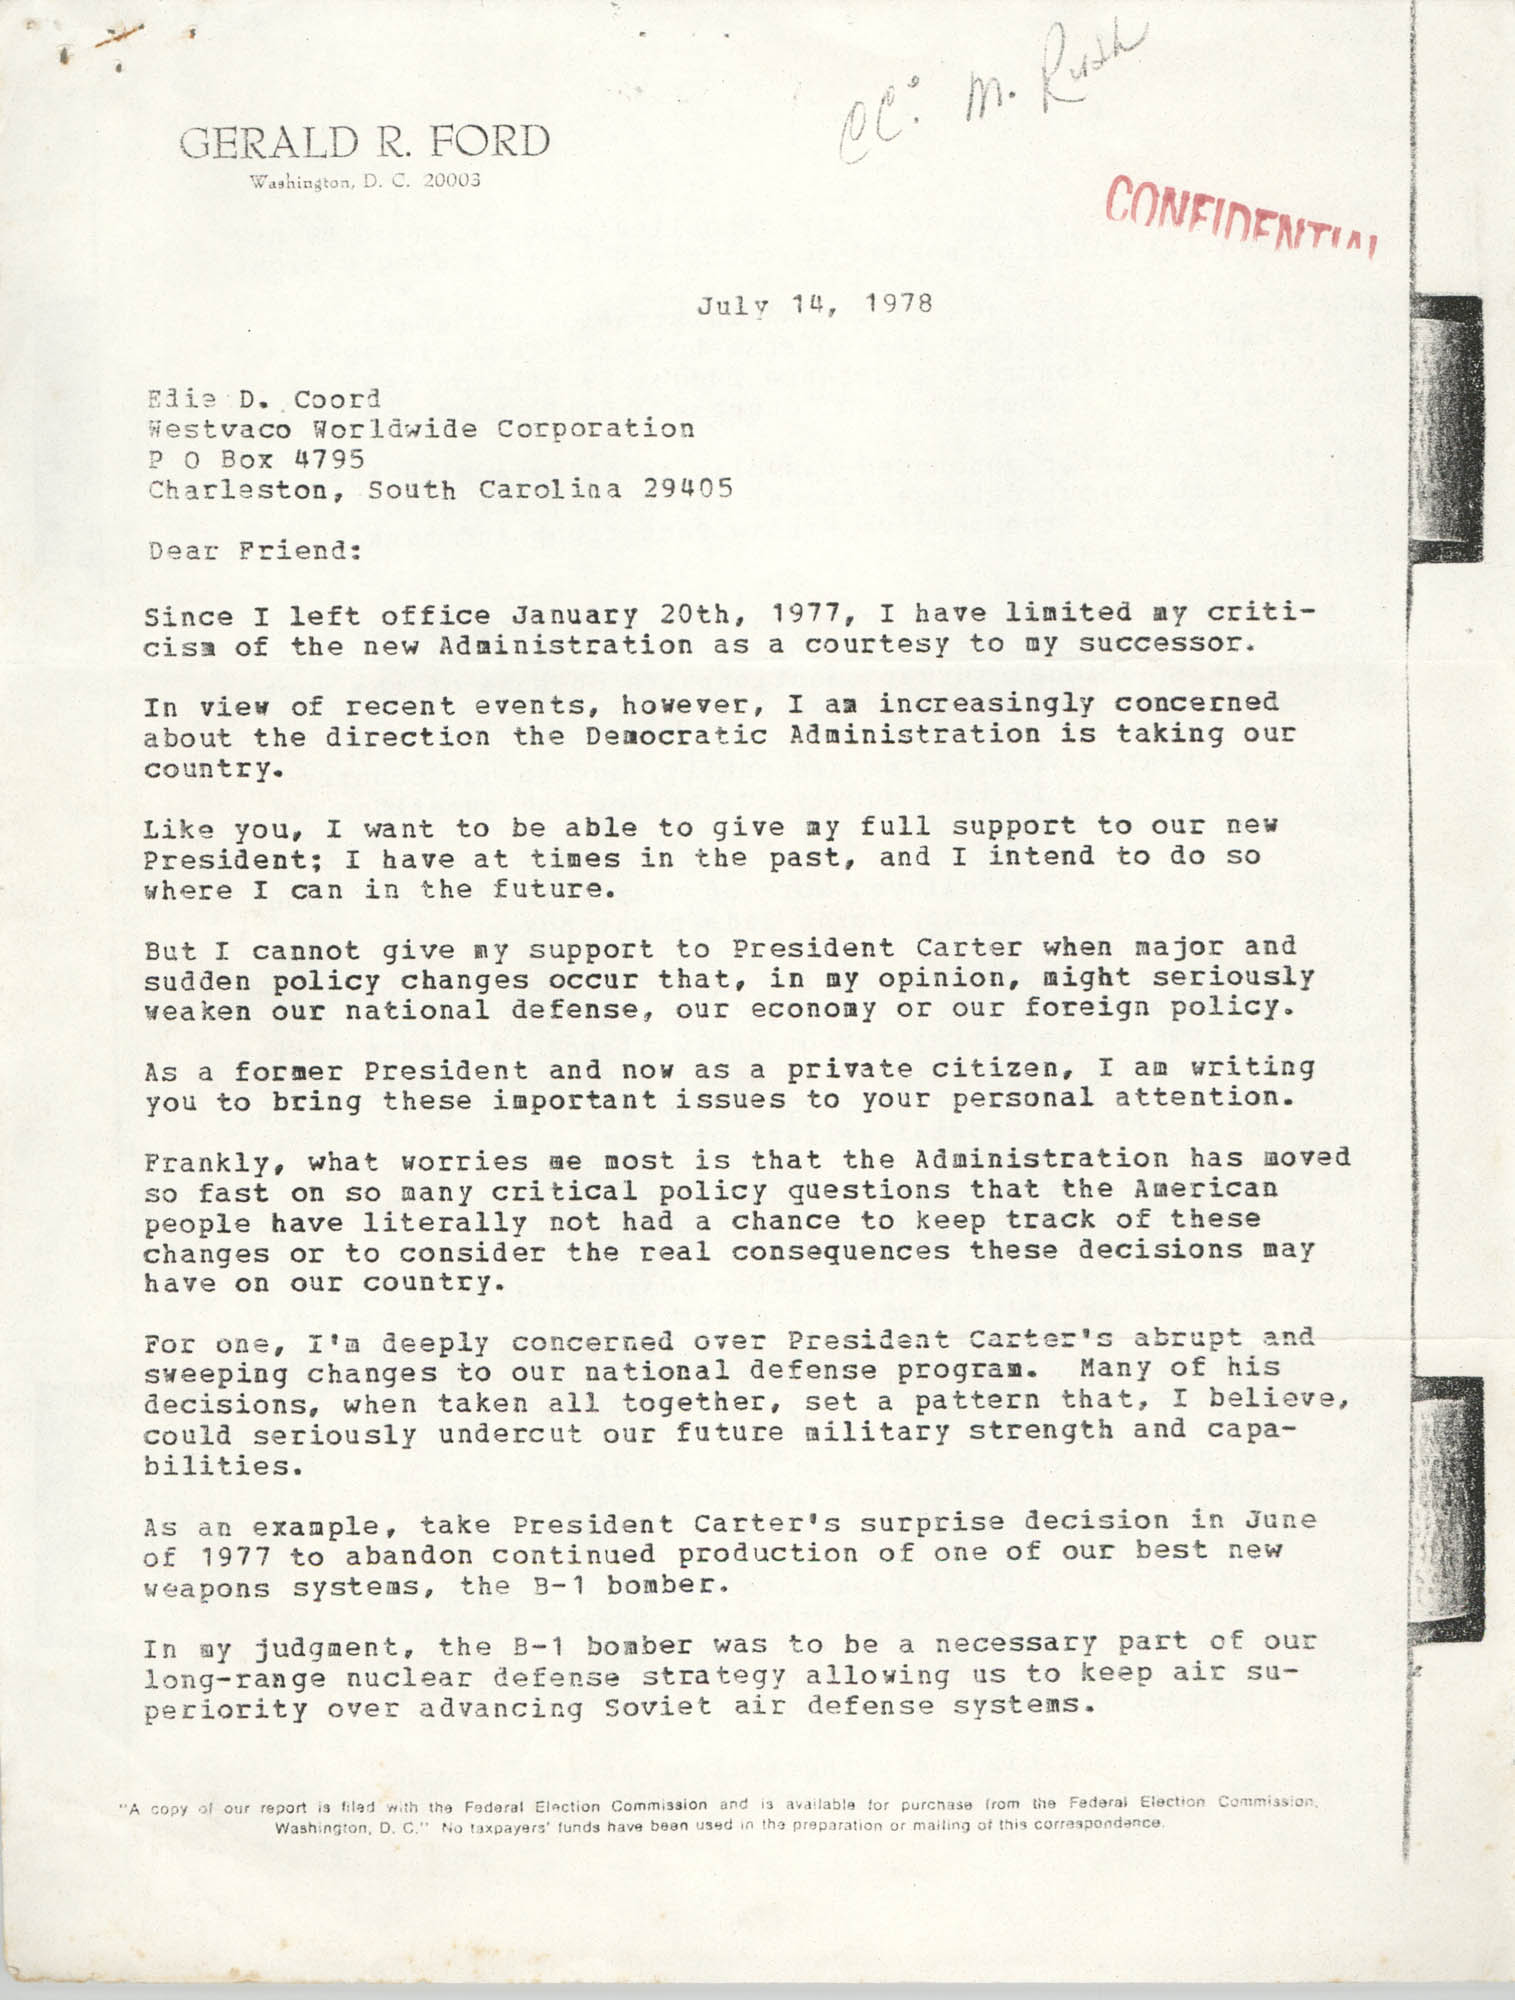 Letter from Gerald R. Ford to Edie D. Coord, July 14, 1978